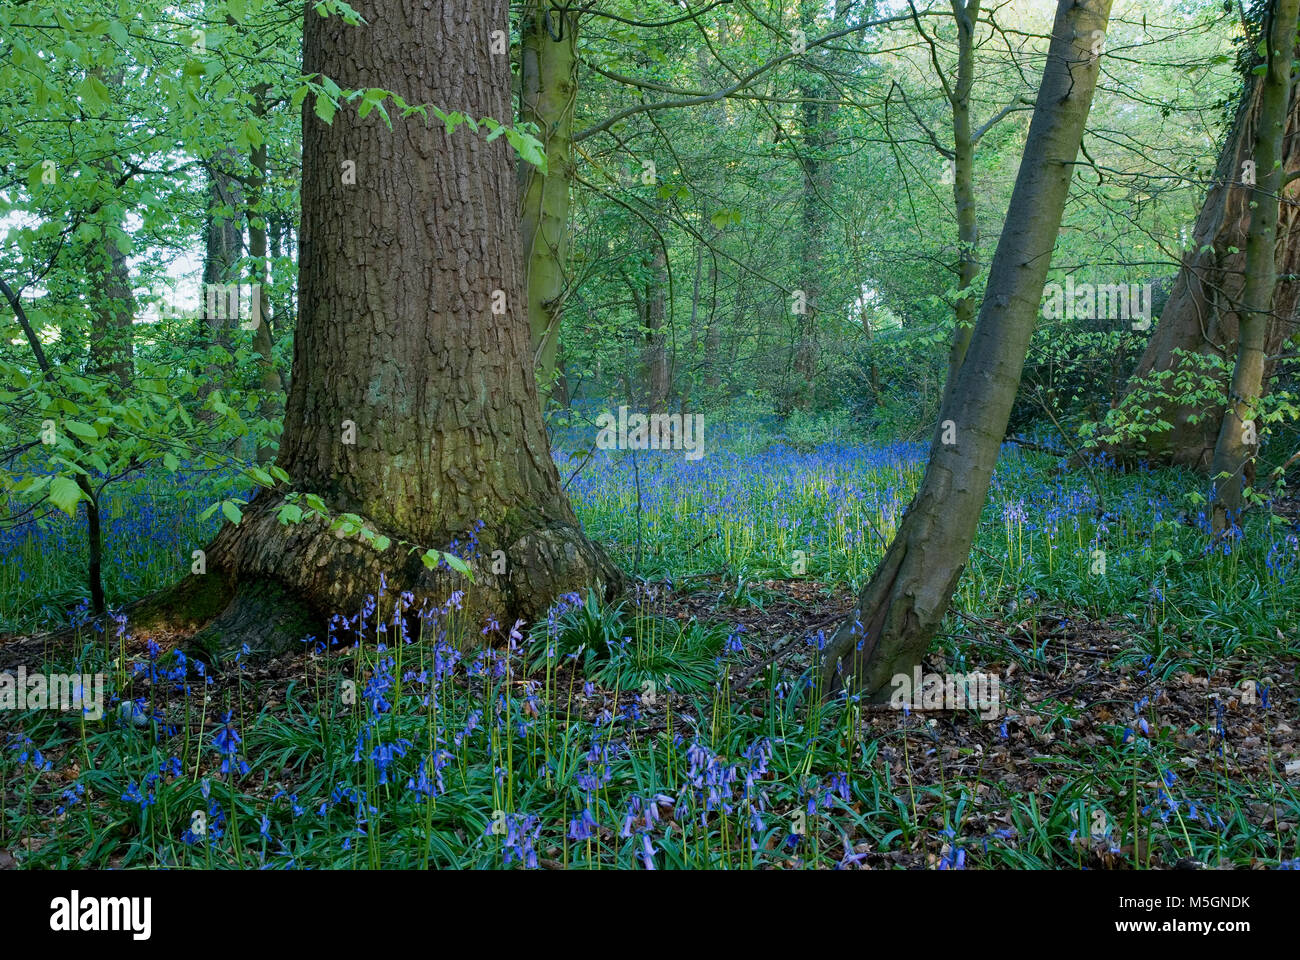 A carpet of bluebells in a woodland in Cheshire UK - Stock Image